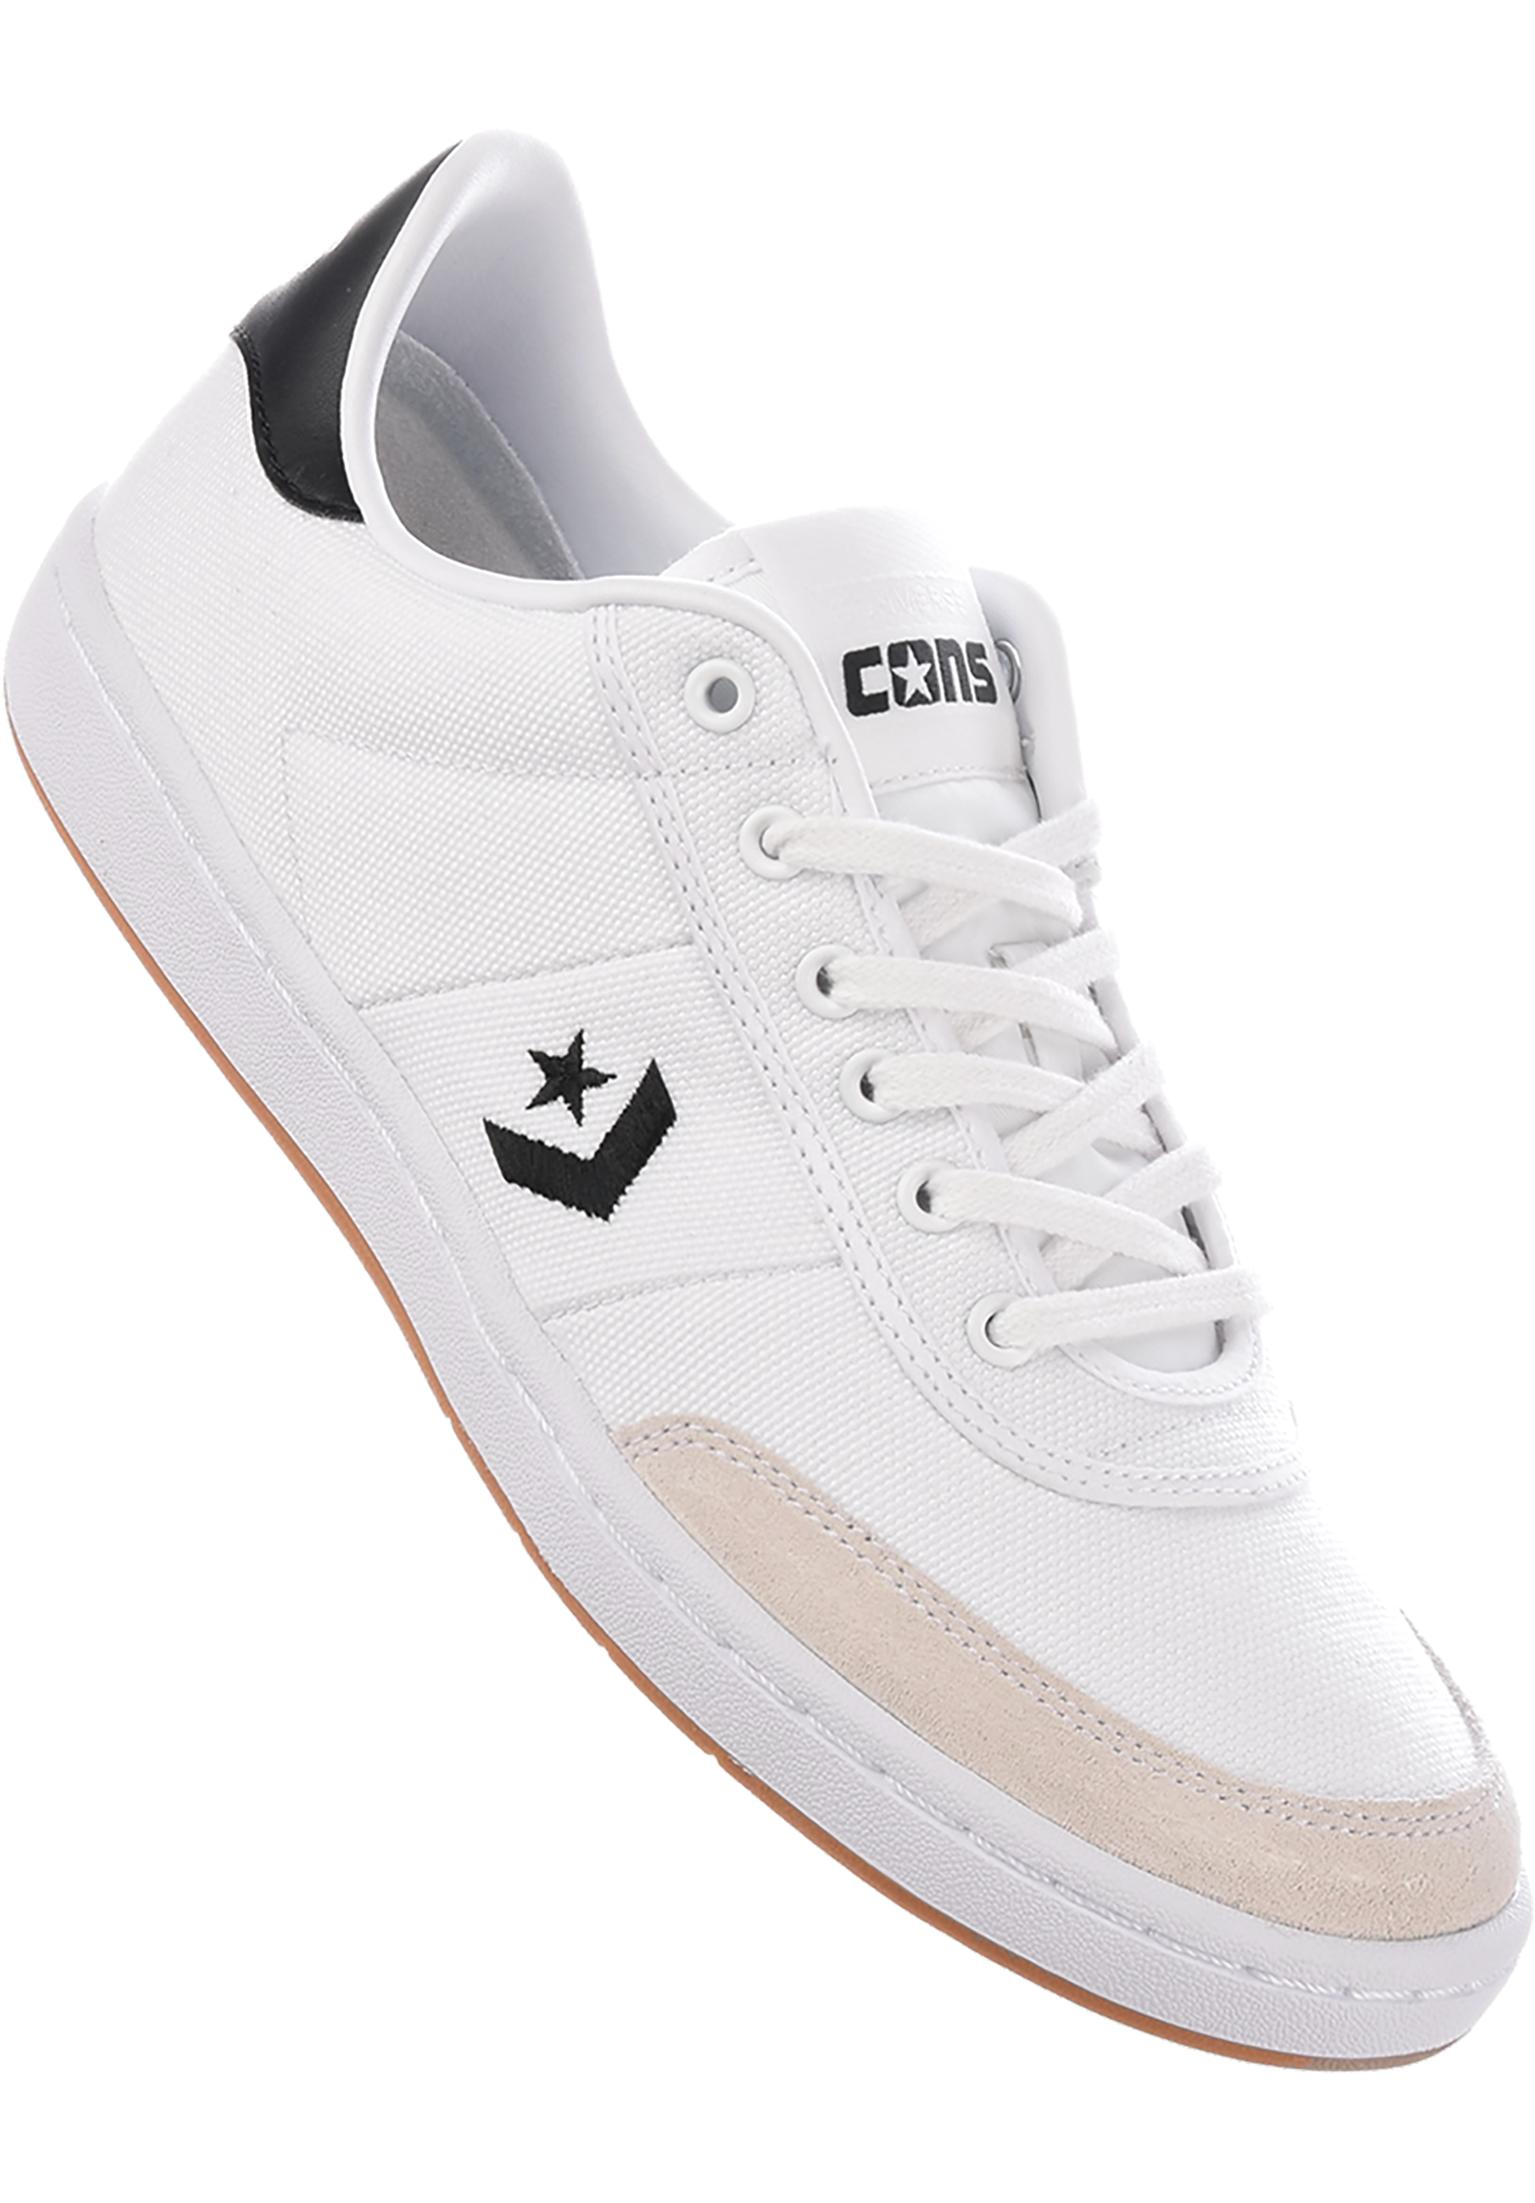 6ee9ffa57b4a ... italy barcelona pro converse cons all shoes in white black white for  men titus 5e0cd 6048f